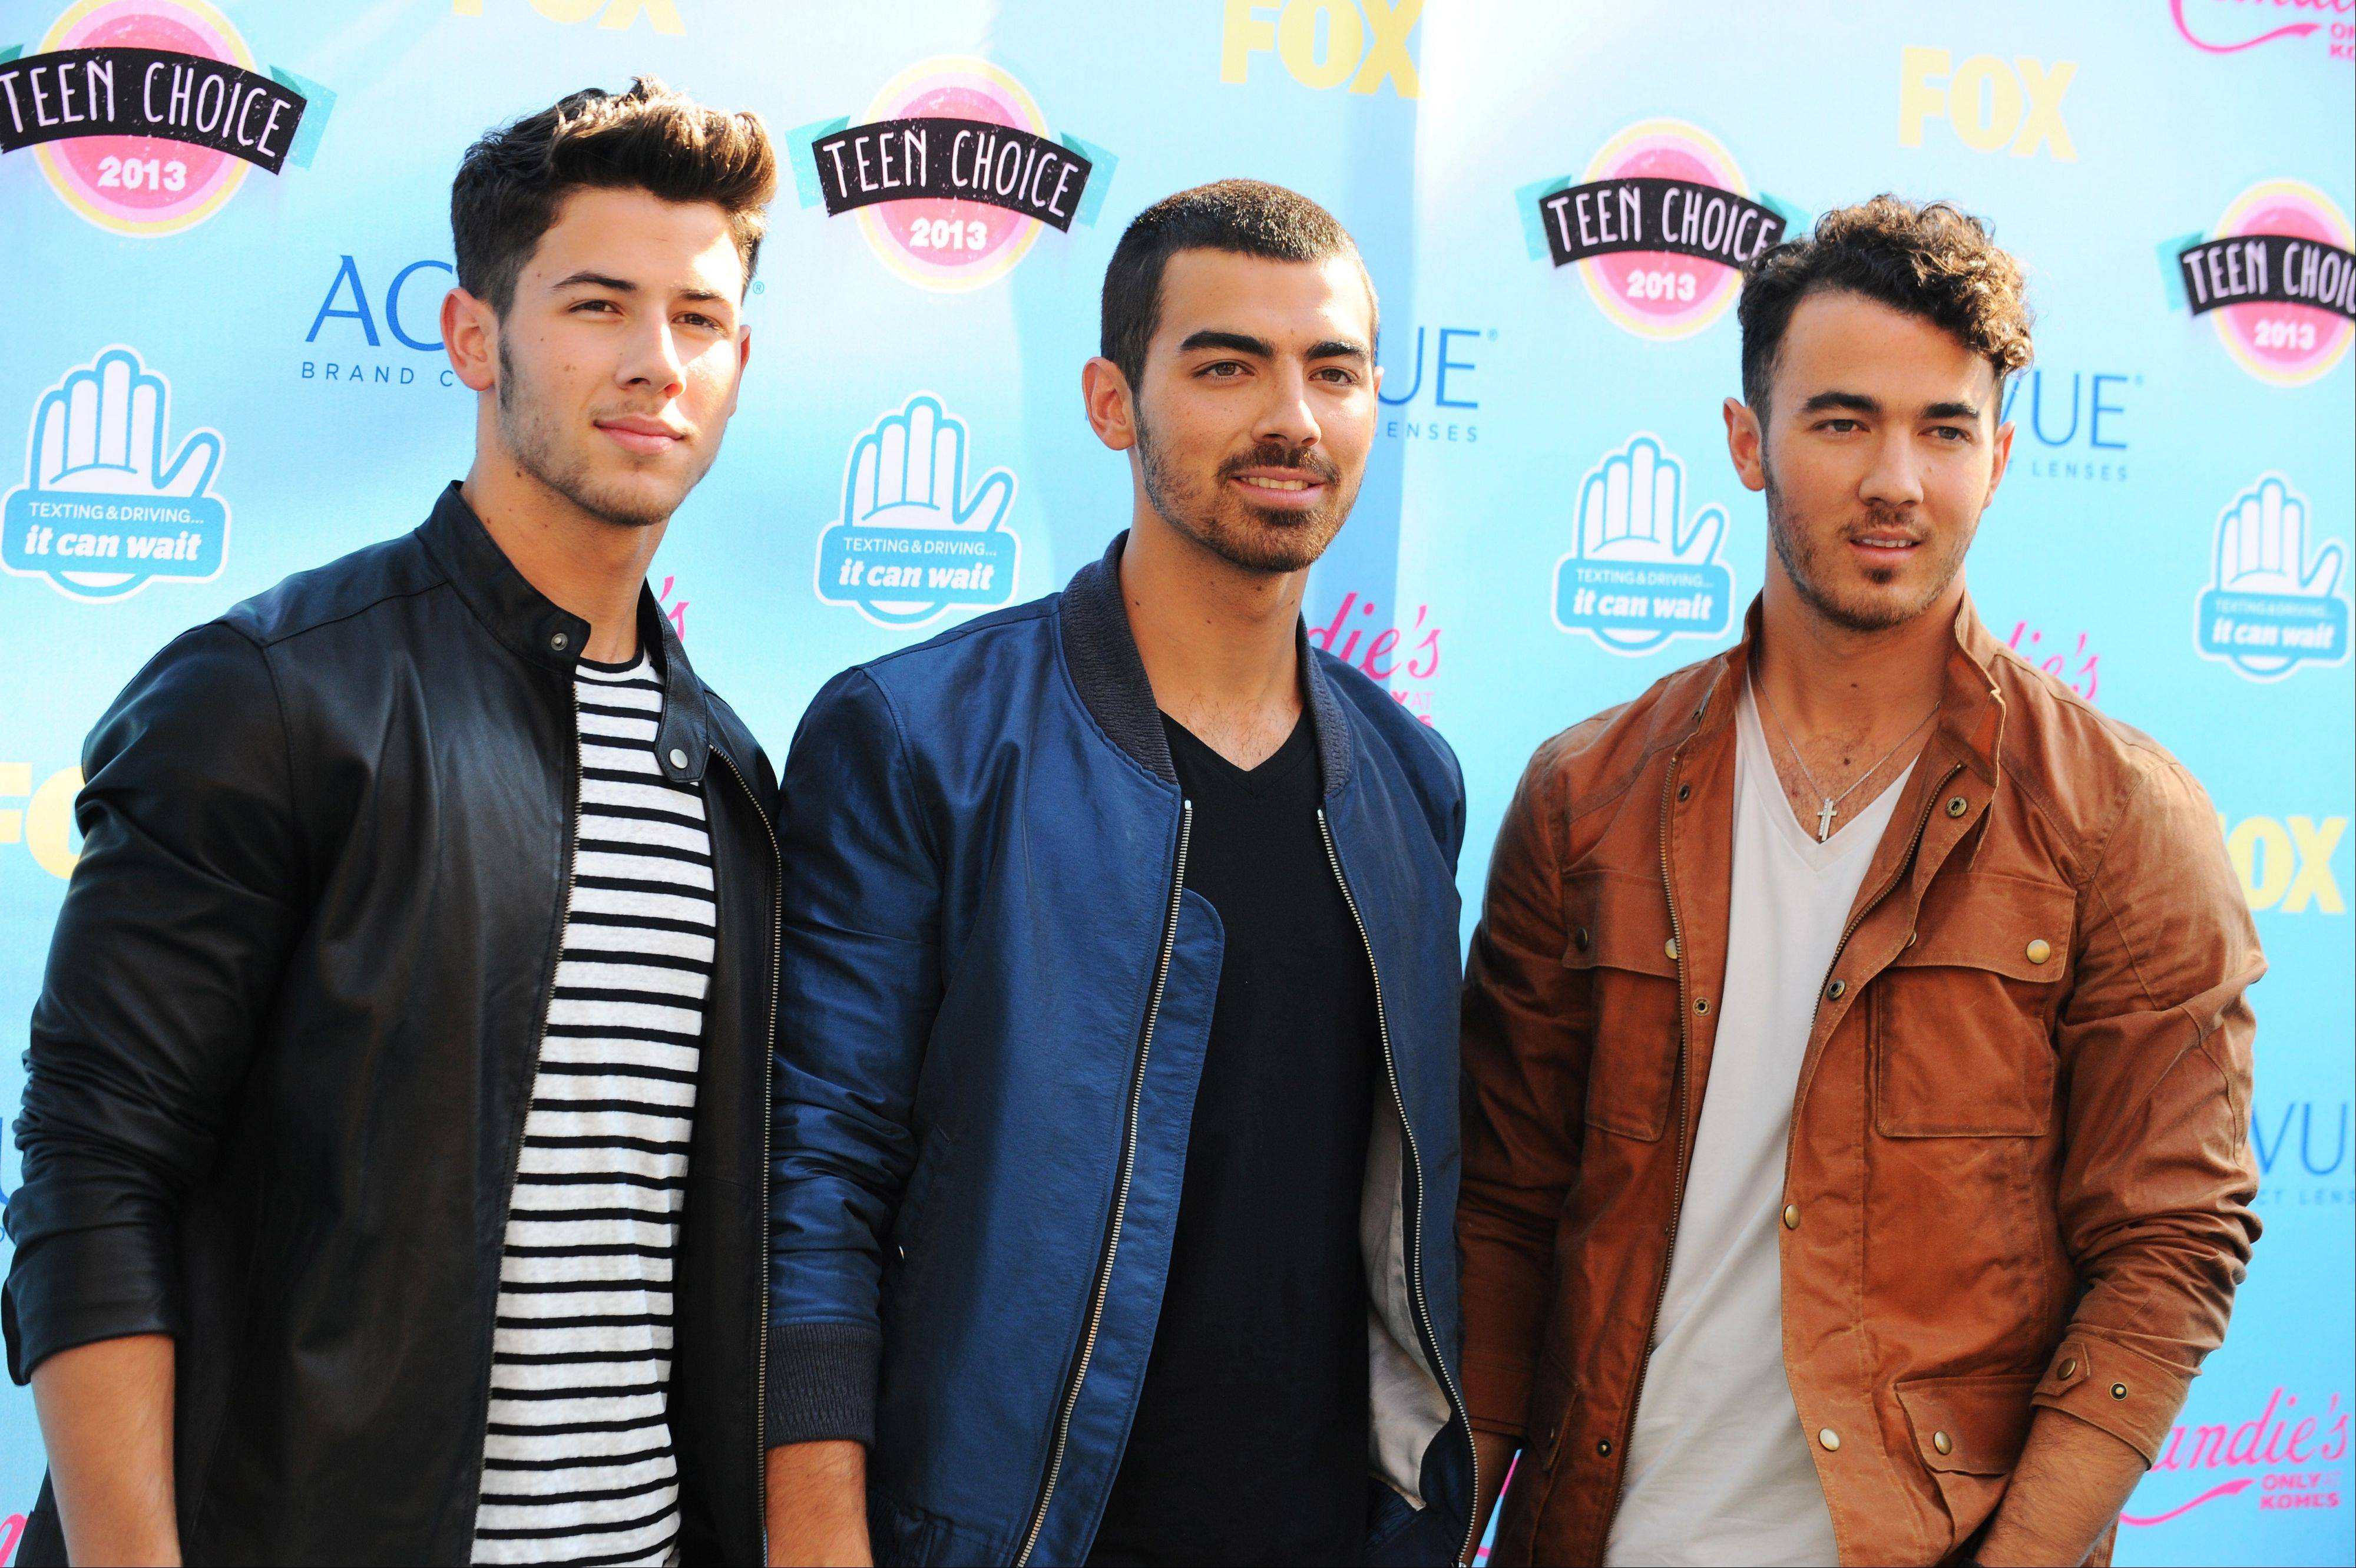 Nick Jonas, left, Joe Jonas and Kevin Jonas of the musical group Jonas Brothers are canceling their tour two days before it was supposed to begin.